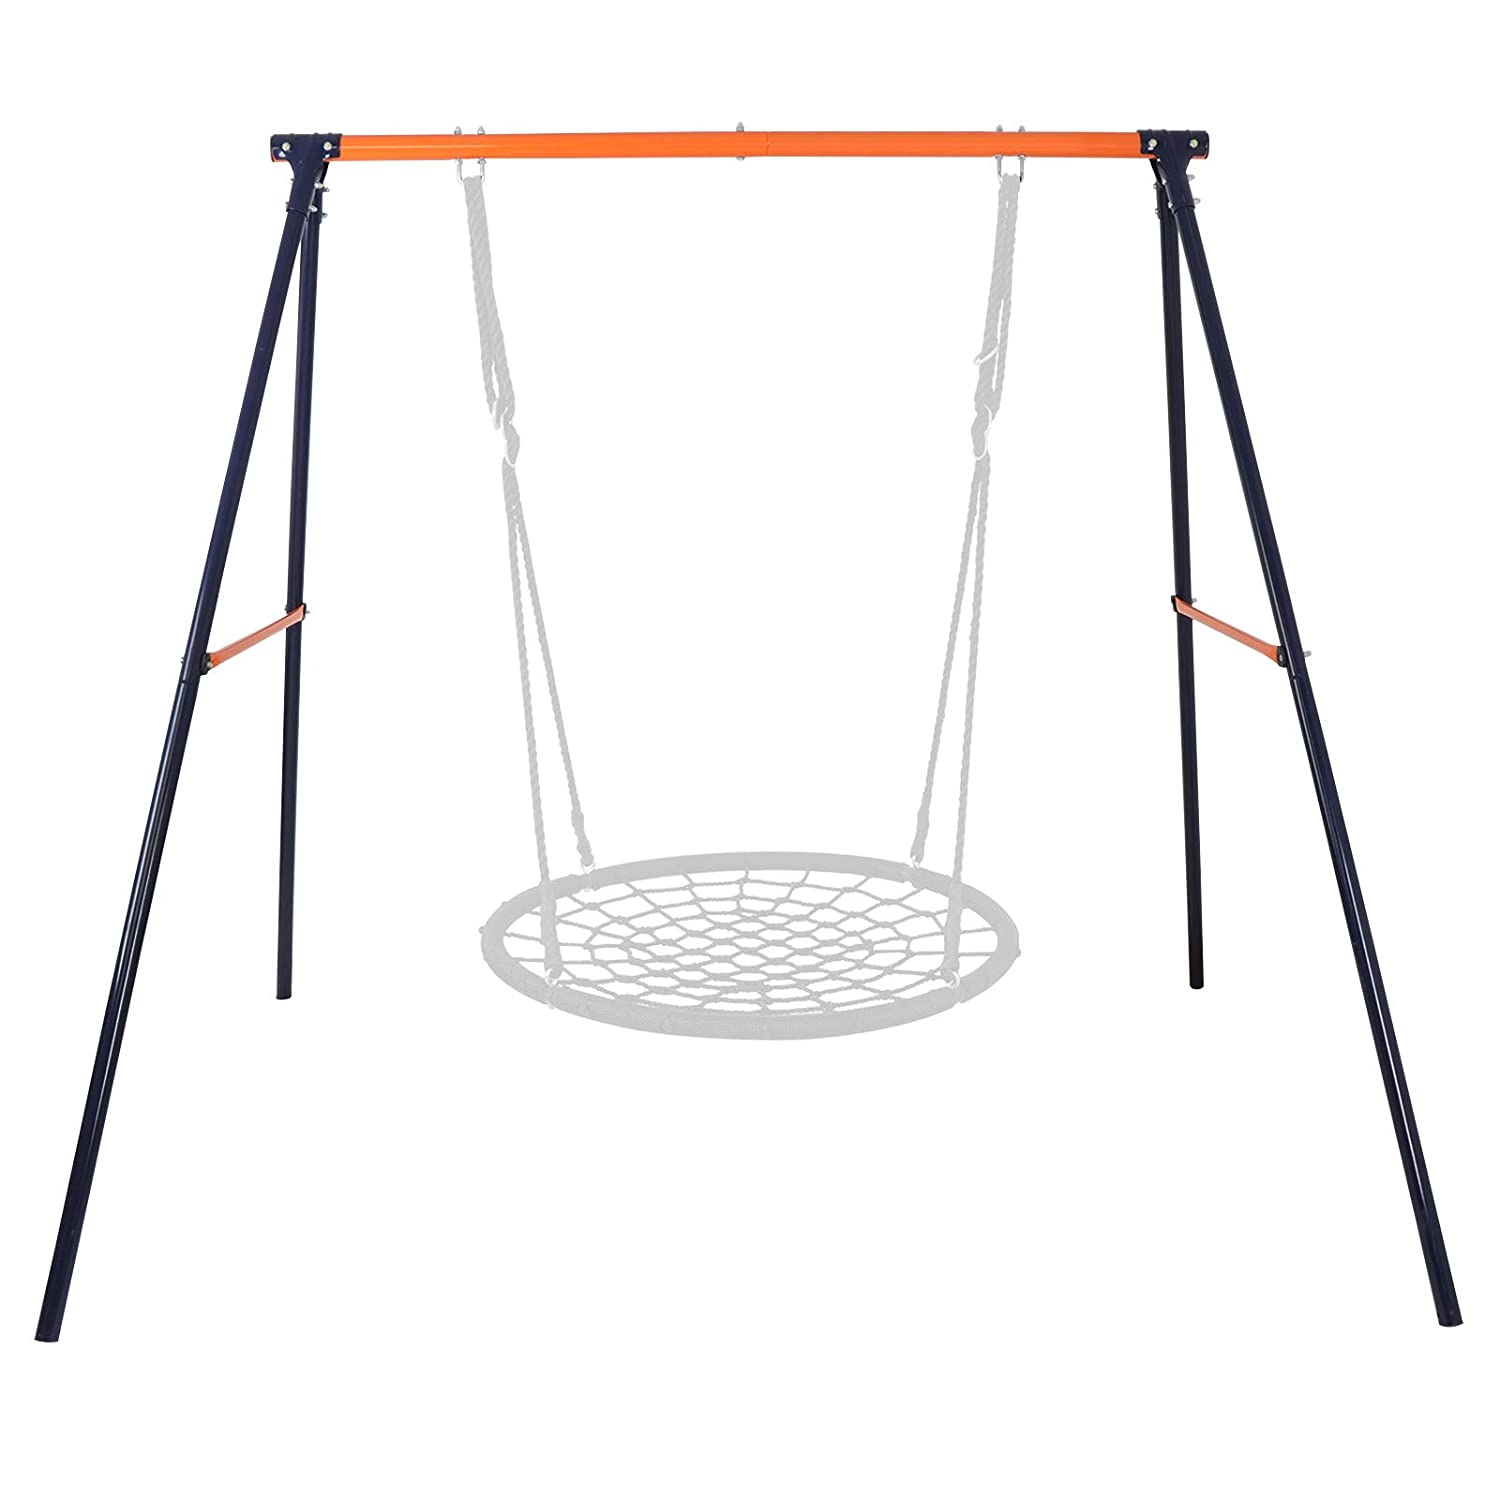 """SUPER DEAL Extra Large Heavy Duty All-Steel All Weather A-Frame Swing Frame Set Metal Swing Stand, 72"""" Height 87"""" Length, Fits for Most Swings, Fun for Kids"""